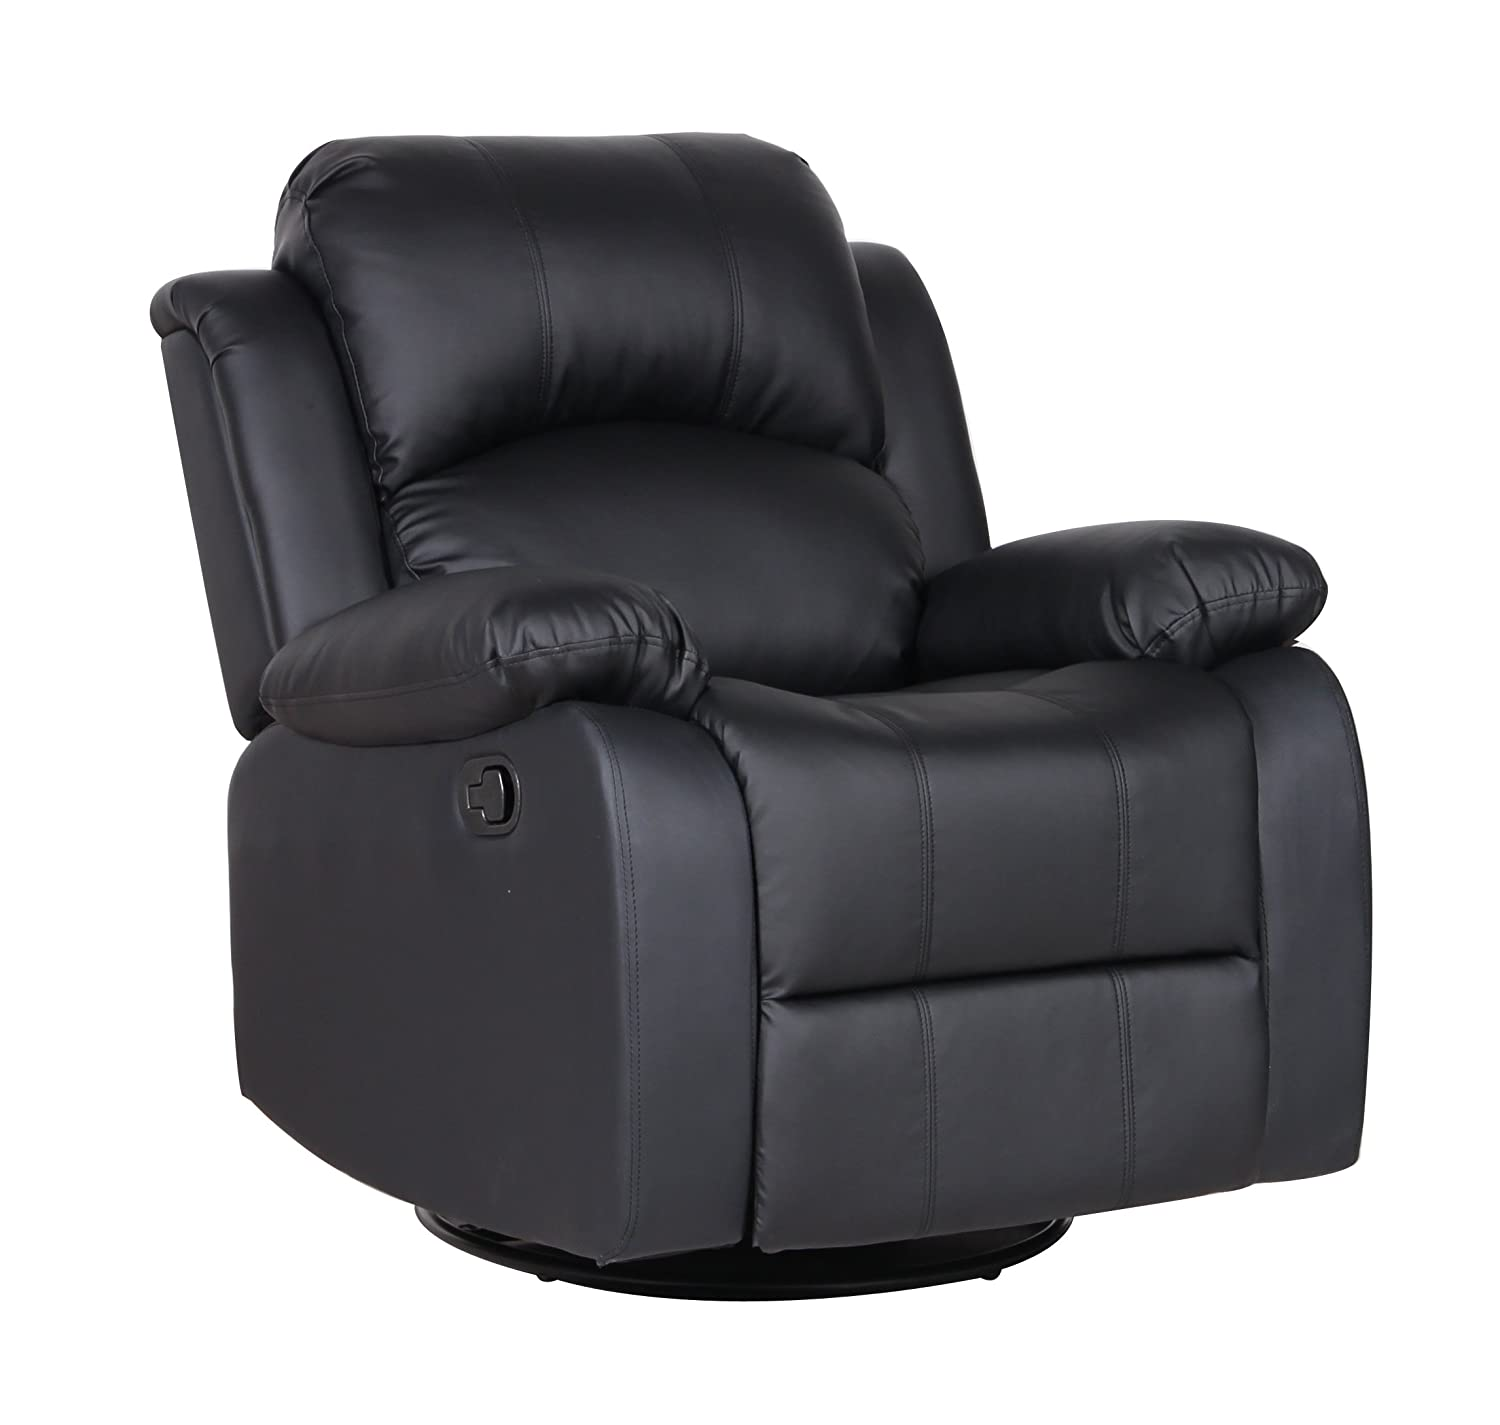 Bonded Leather Rocker and swivel recliner chairs  sc 1 st  Comfortable recliner.com & Small recliners Archives - Comfortable recliner.com islam-shia.org